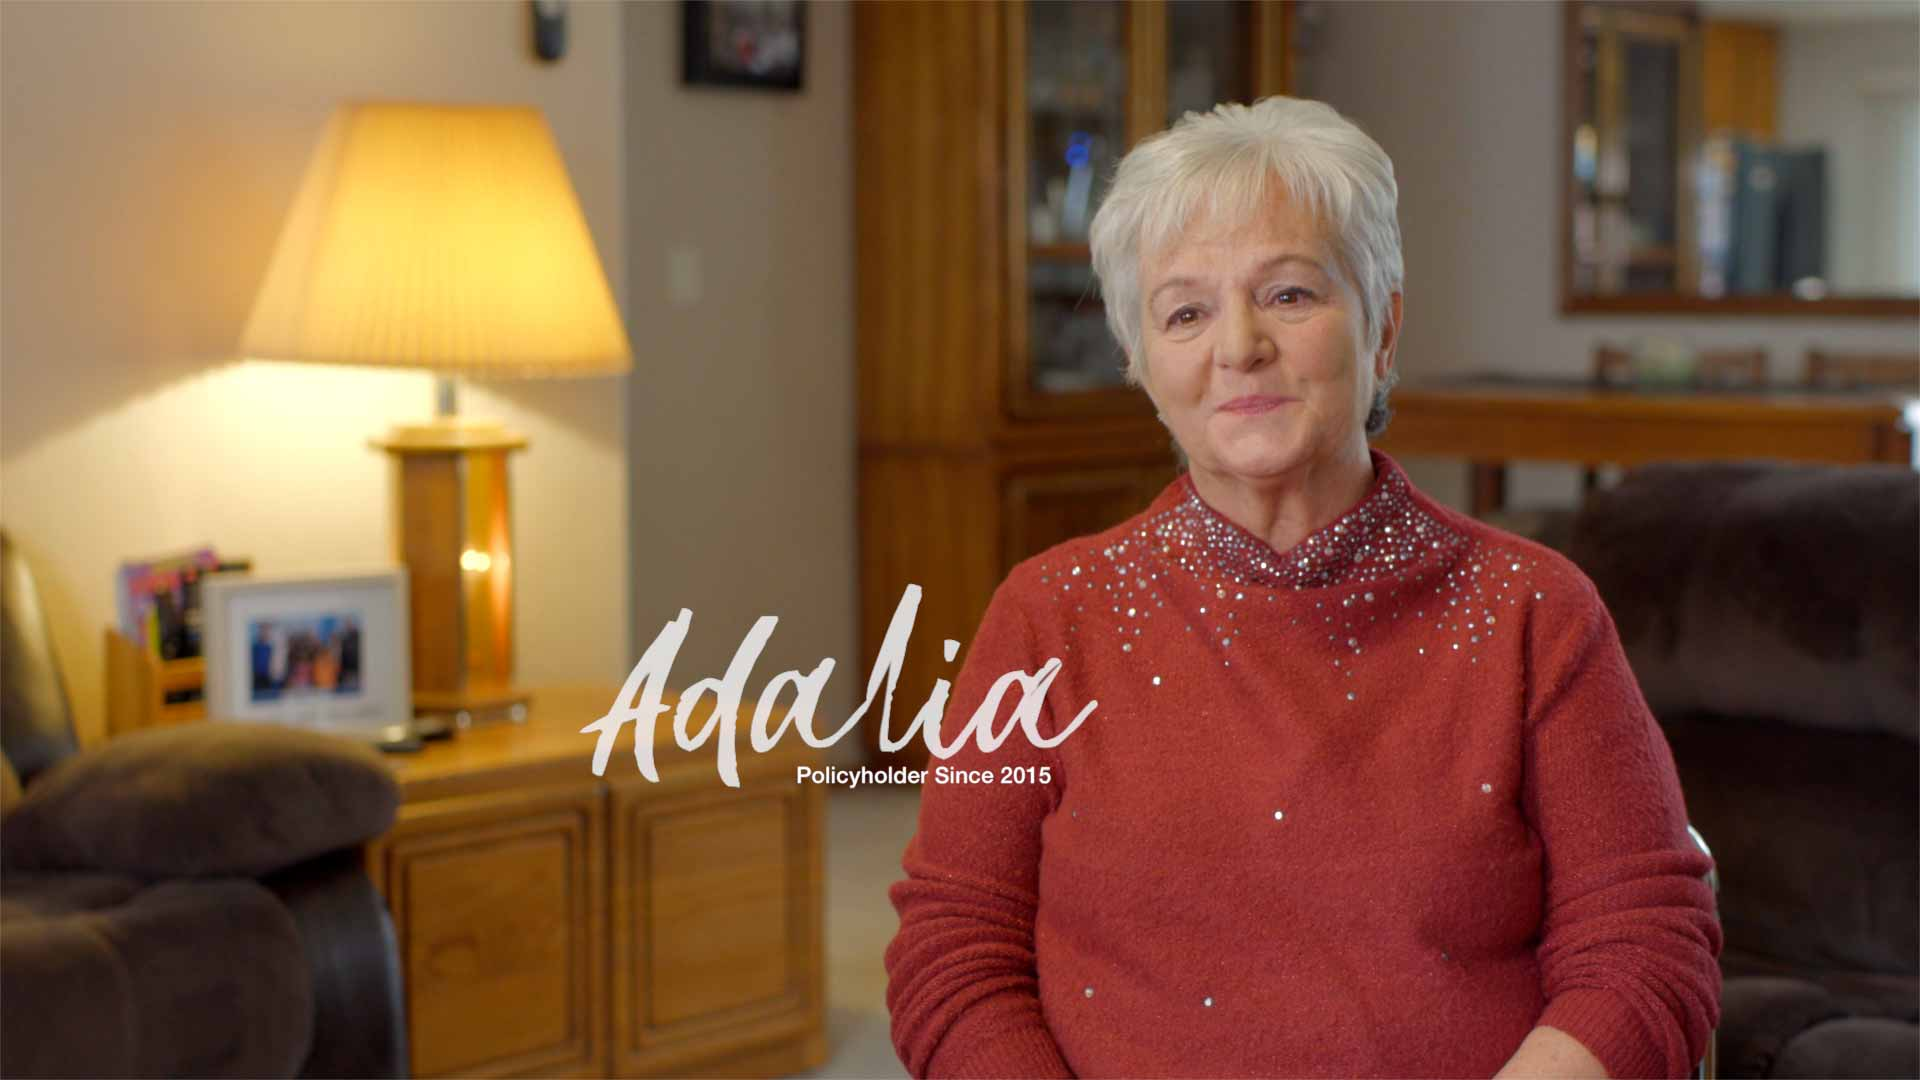 Meet Adalia, living her life GREAT with Great American